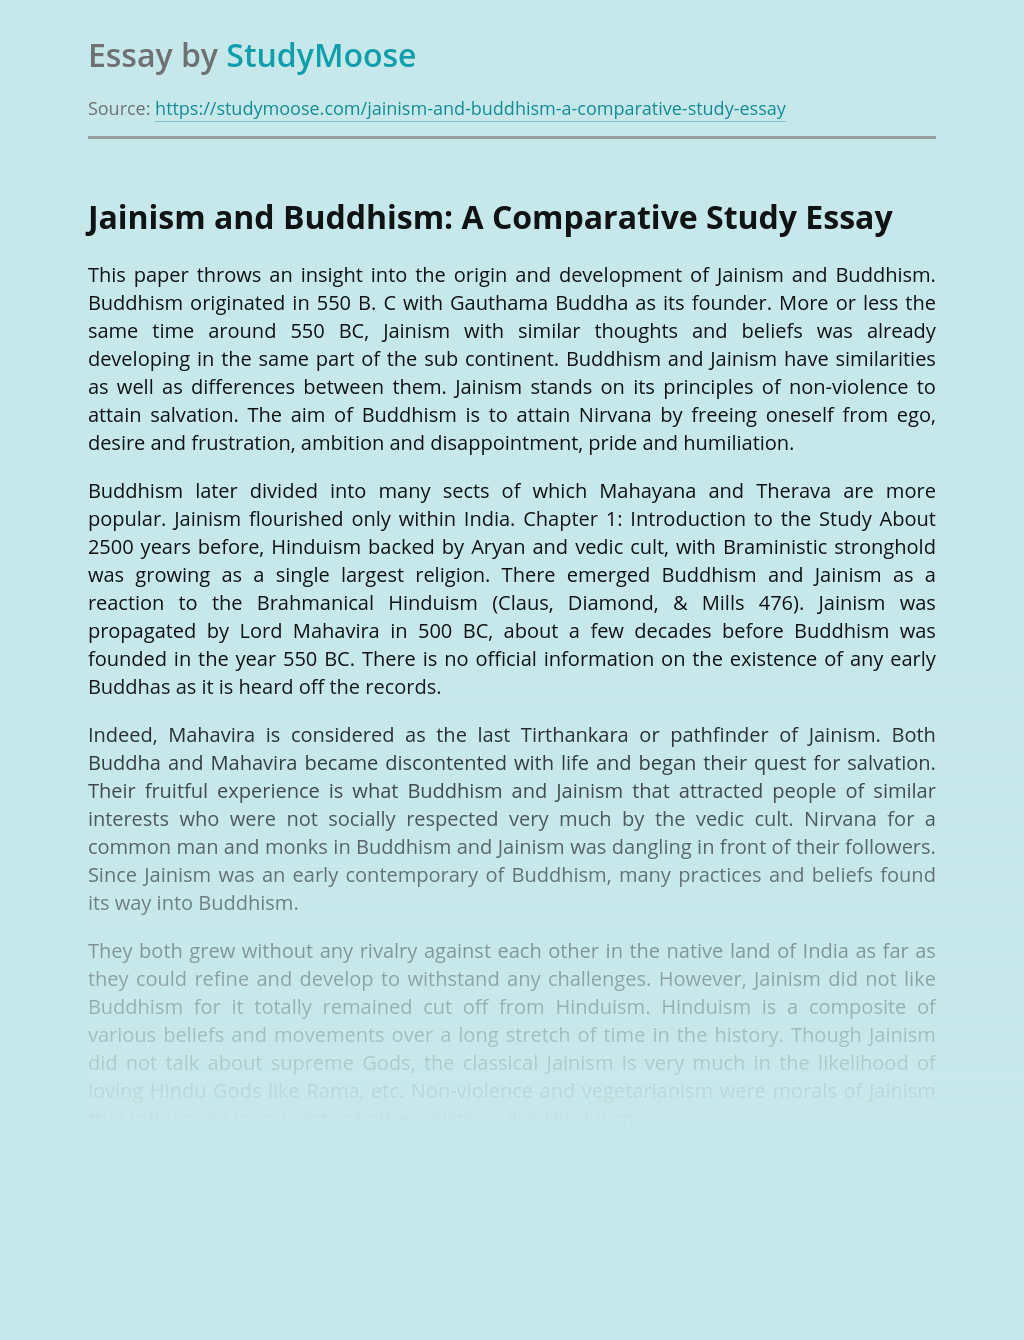 Jainism and Buddhism: A Comparative Study